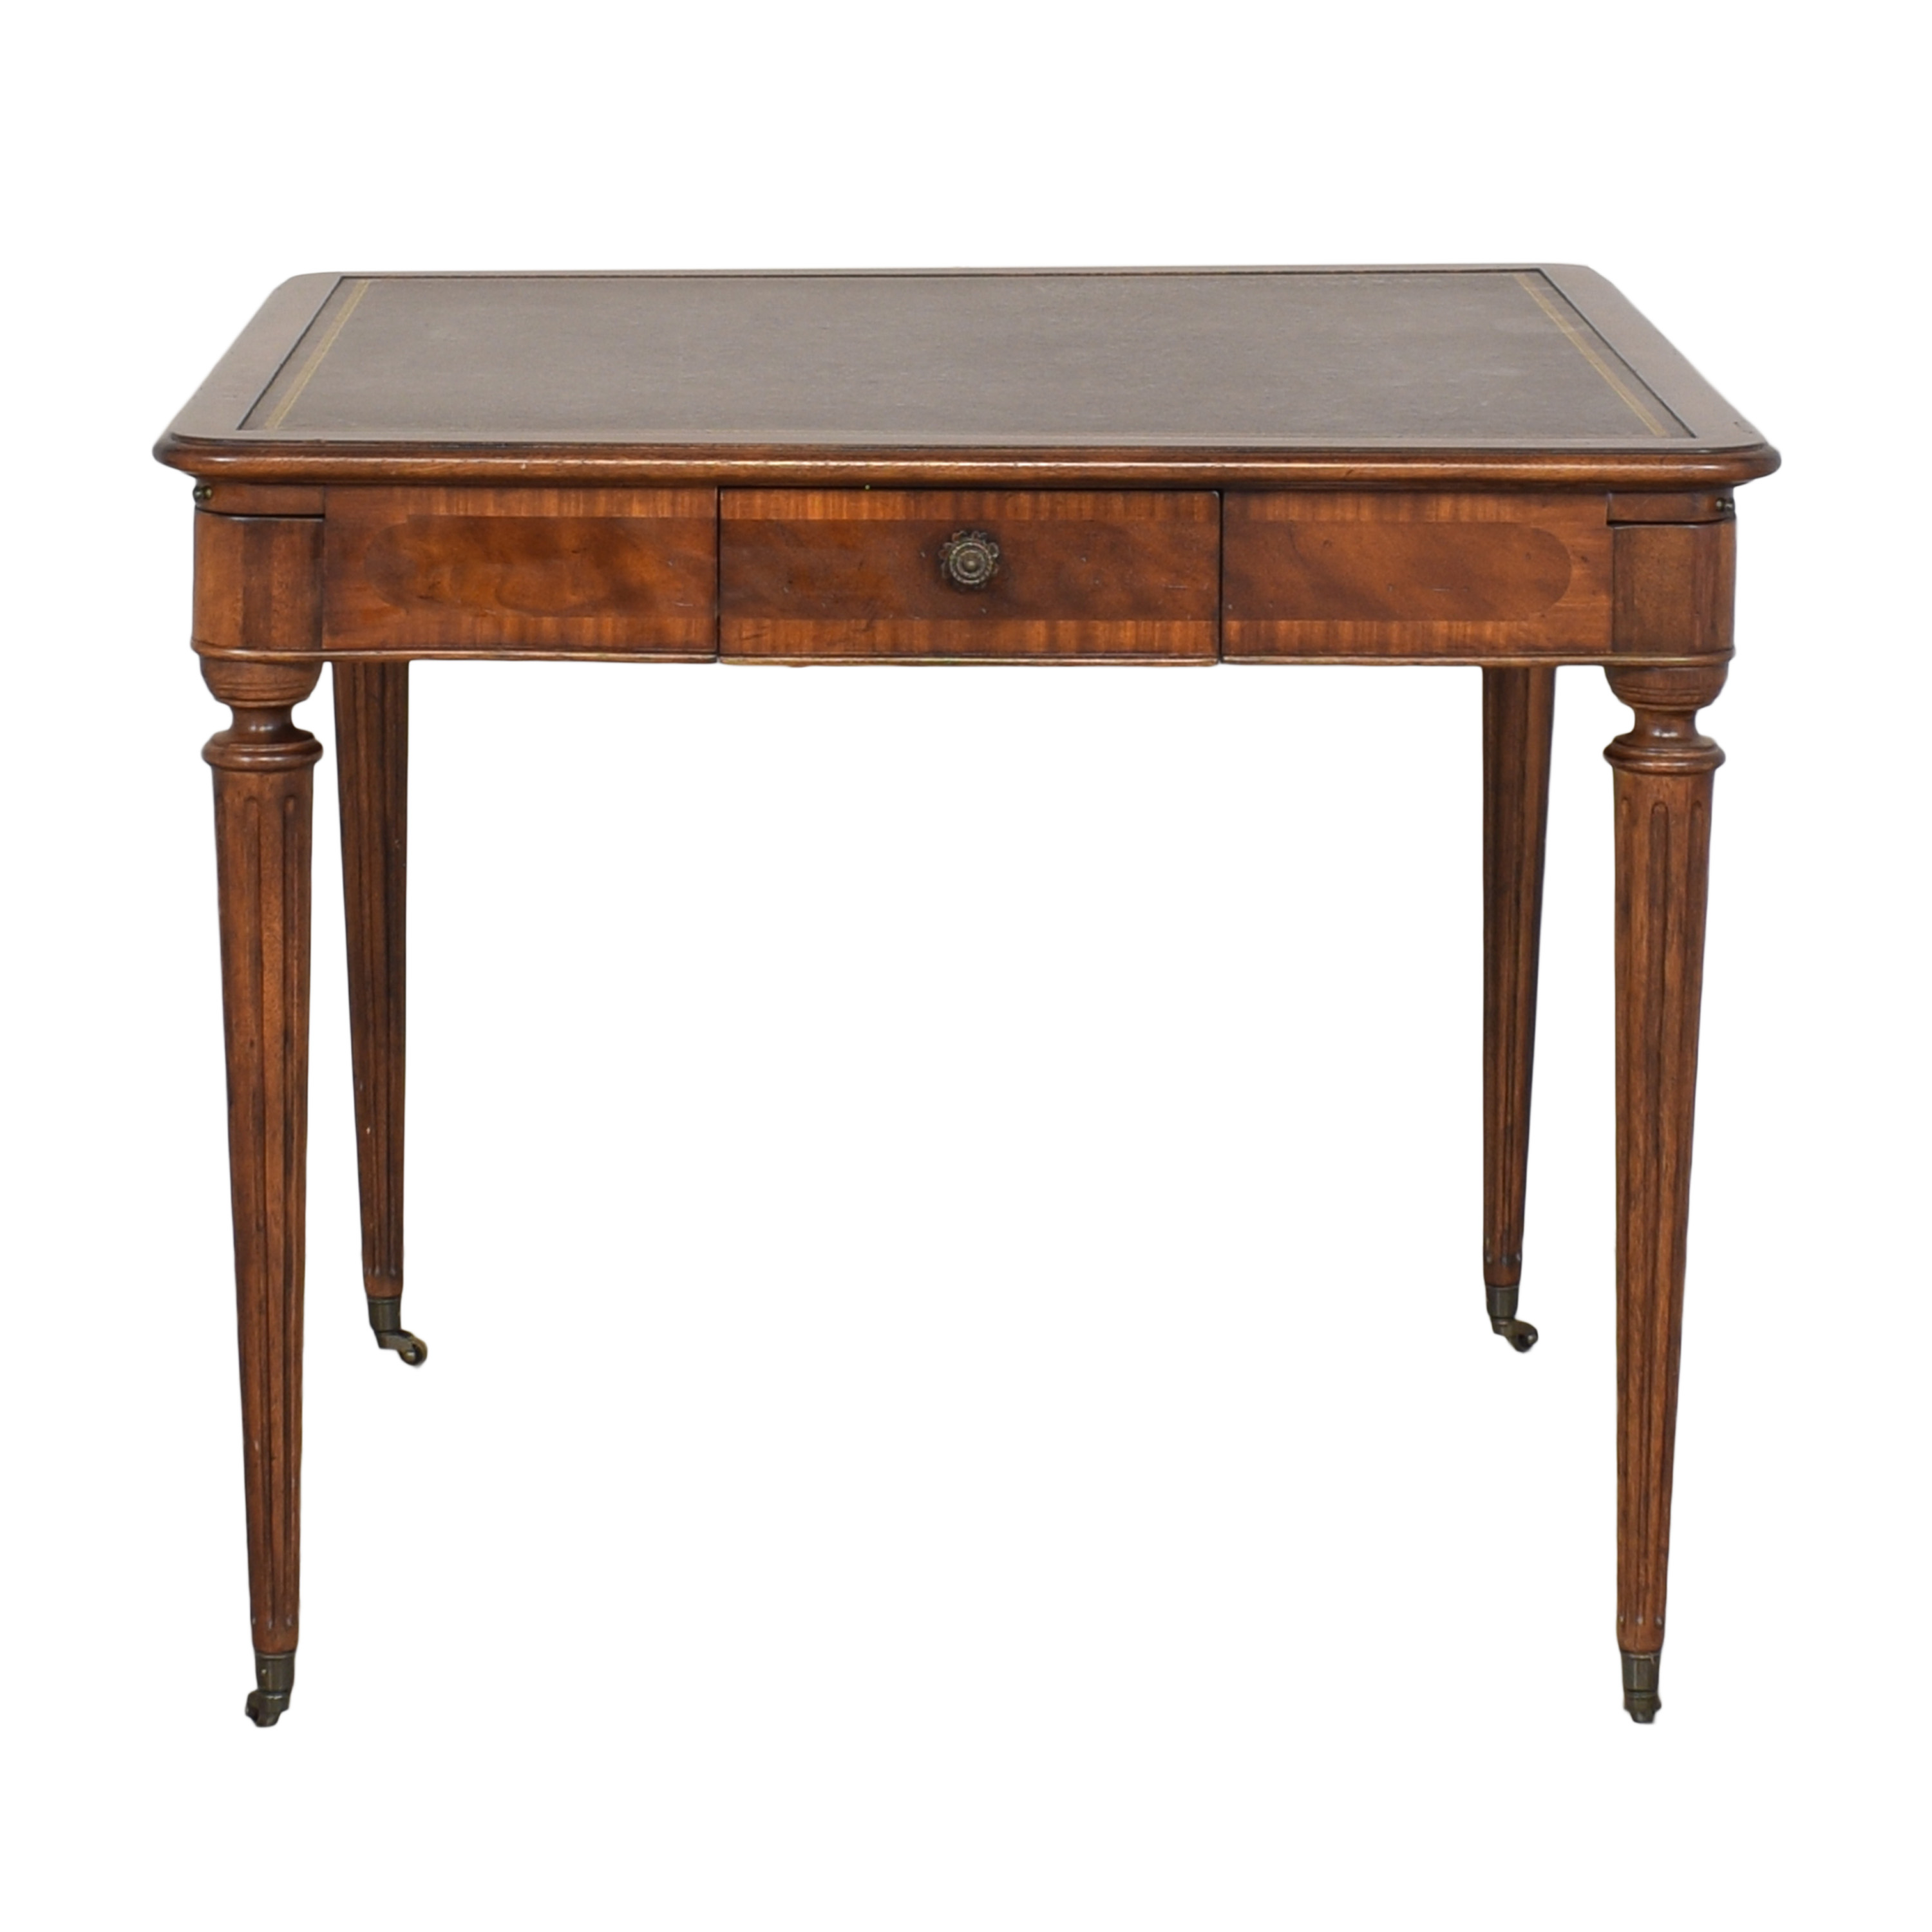 Drexel Heritage Drexel Heritage Game Table Tables